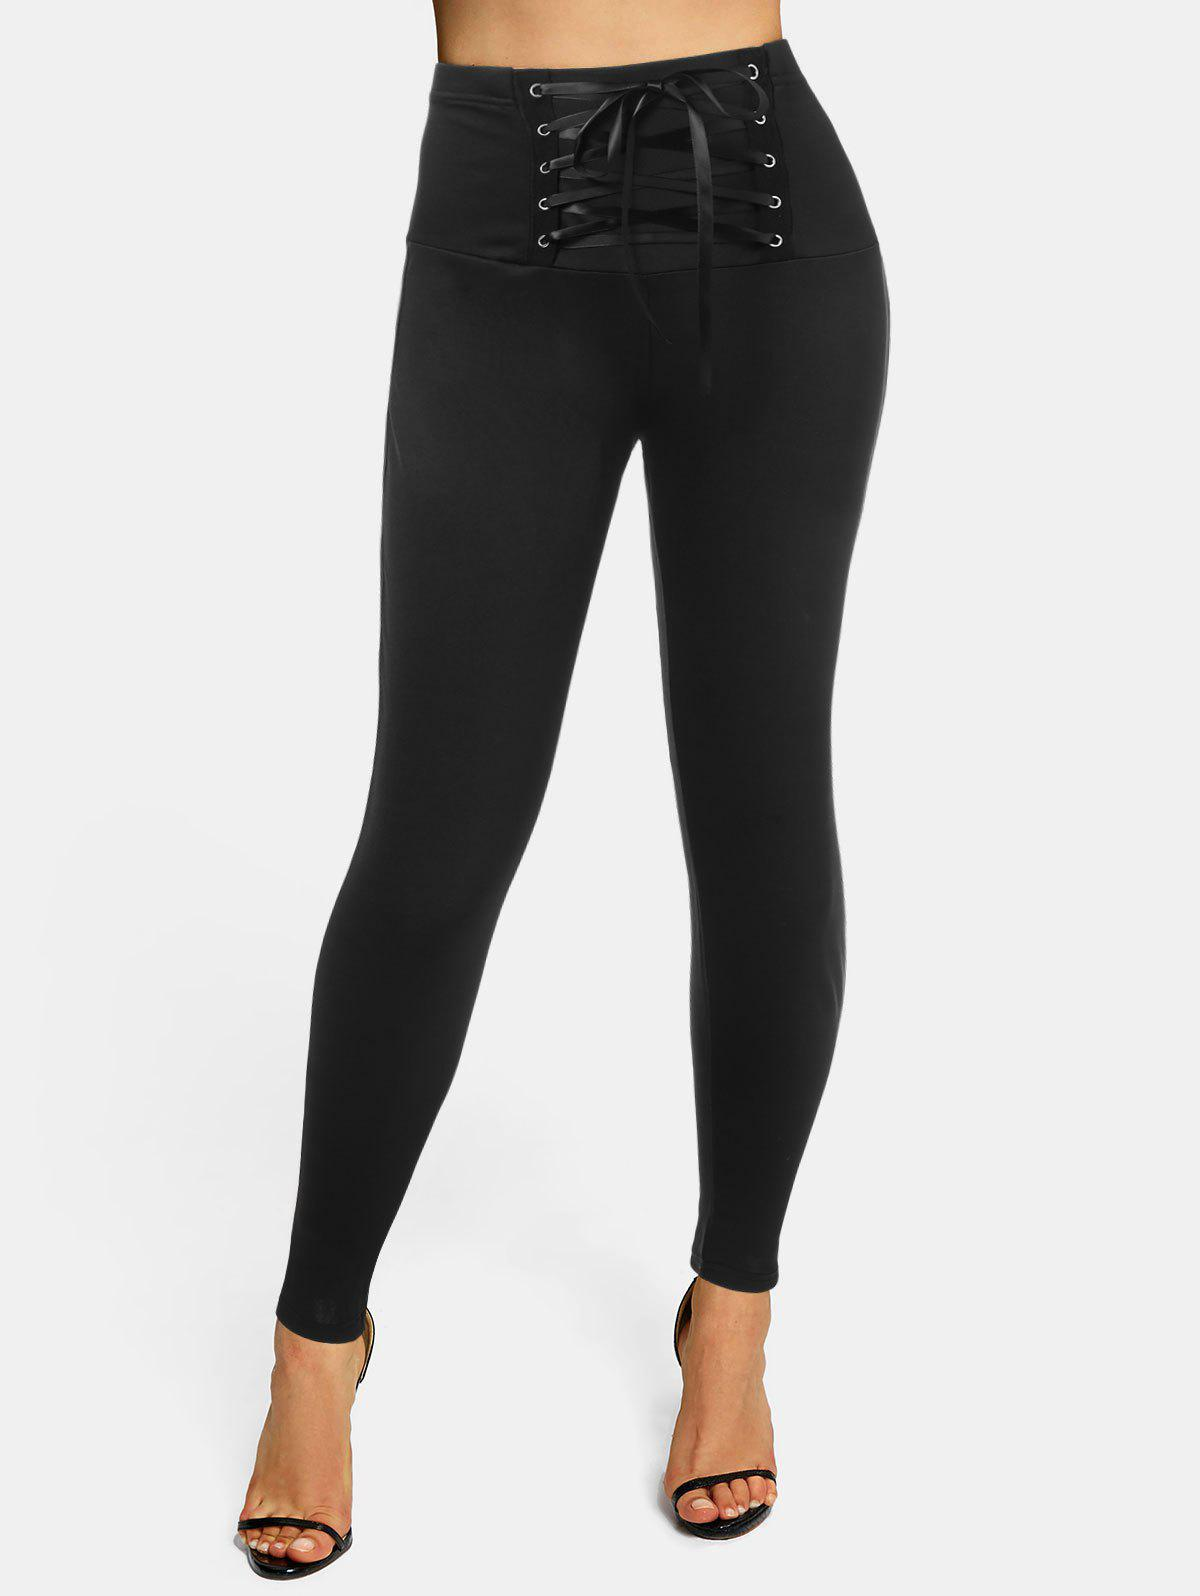 High Waisted Lace-up Skinny Leggings - BLACK L